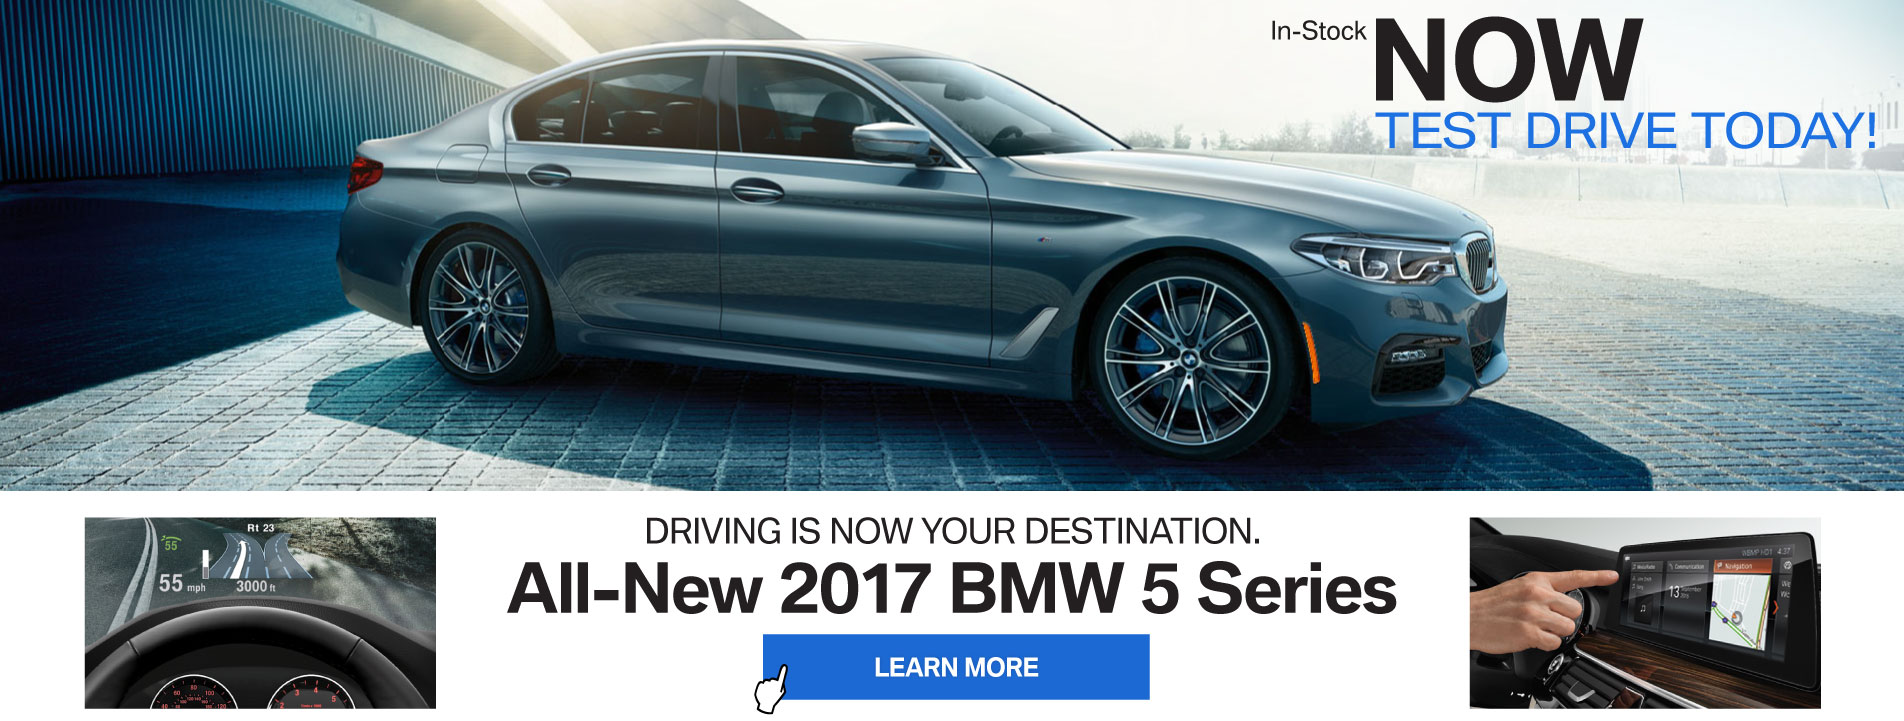 The All-New 2017 5 Series